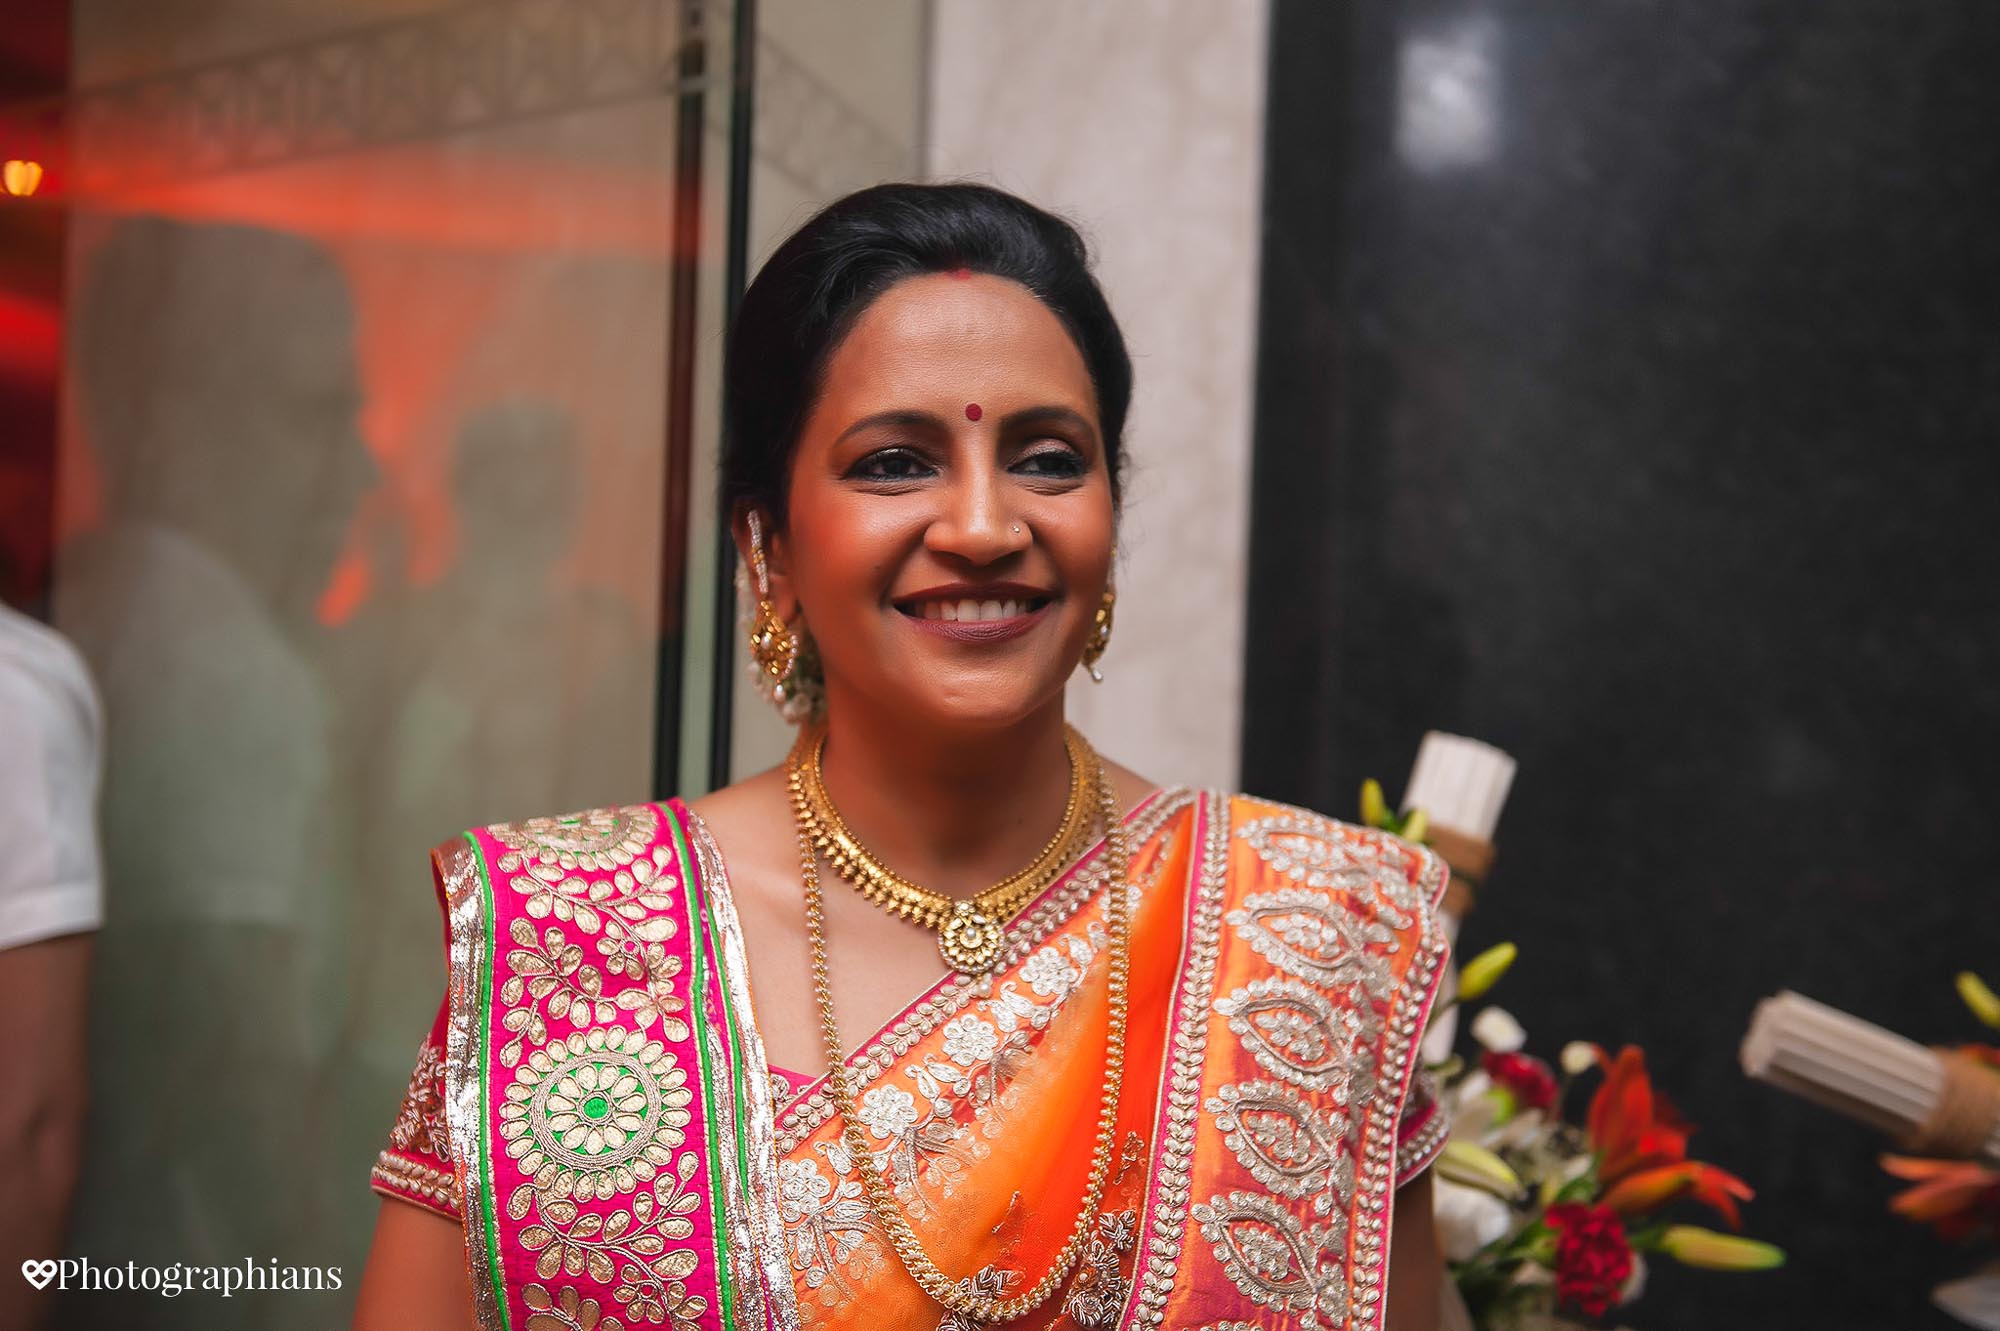 Punjabi_Marwari_Wedding_Kolkata_Photographians_-VIDHI-197